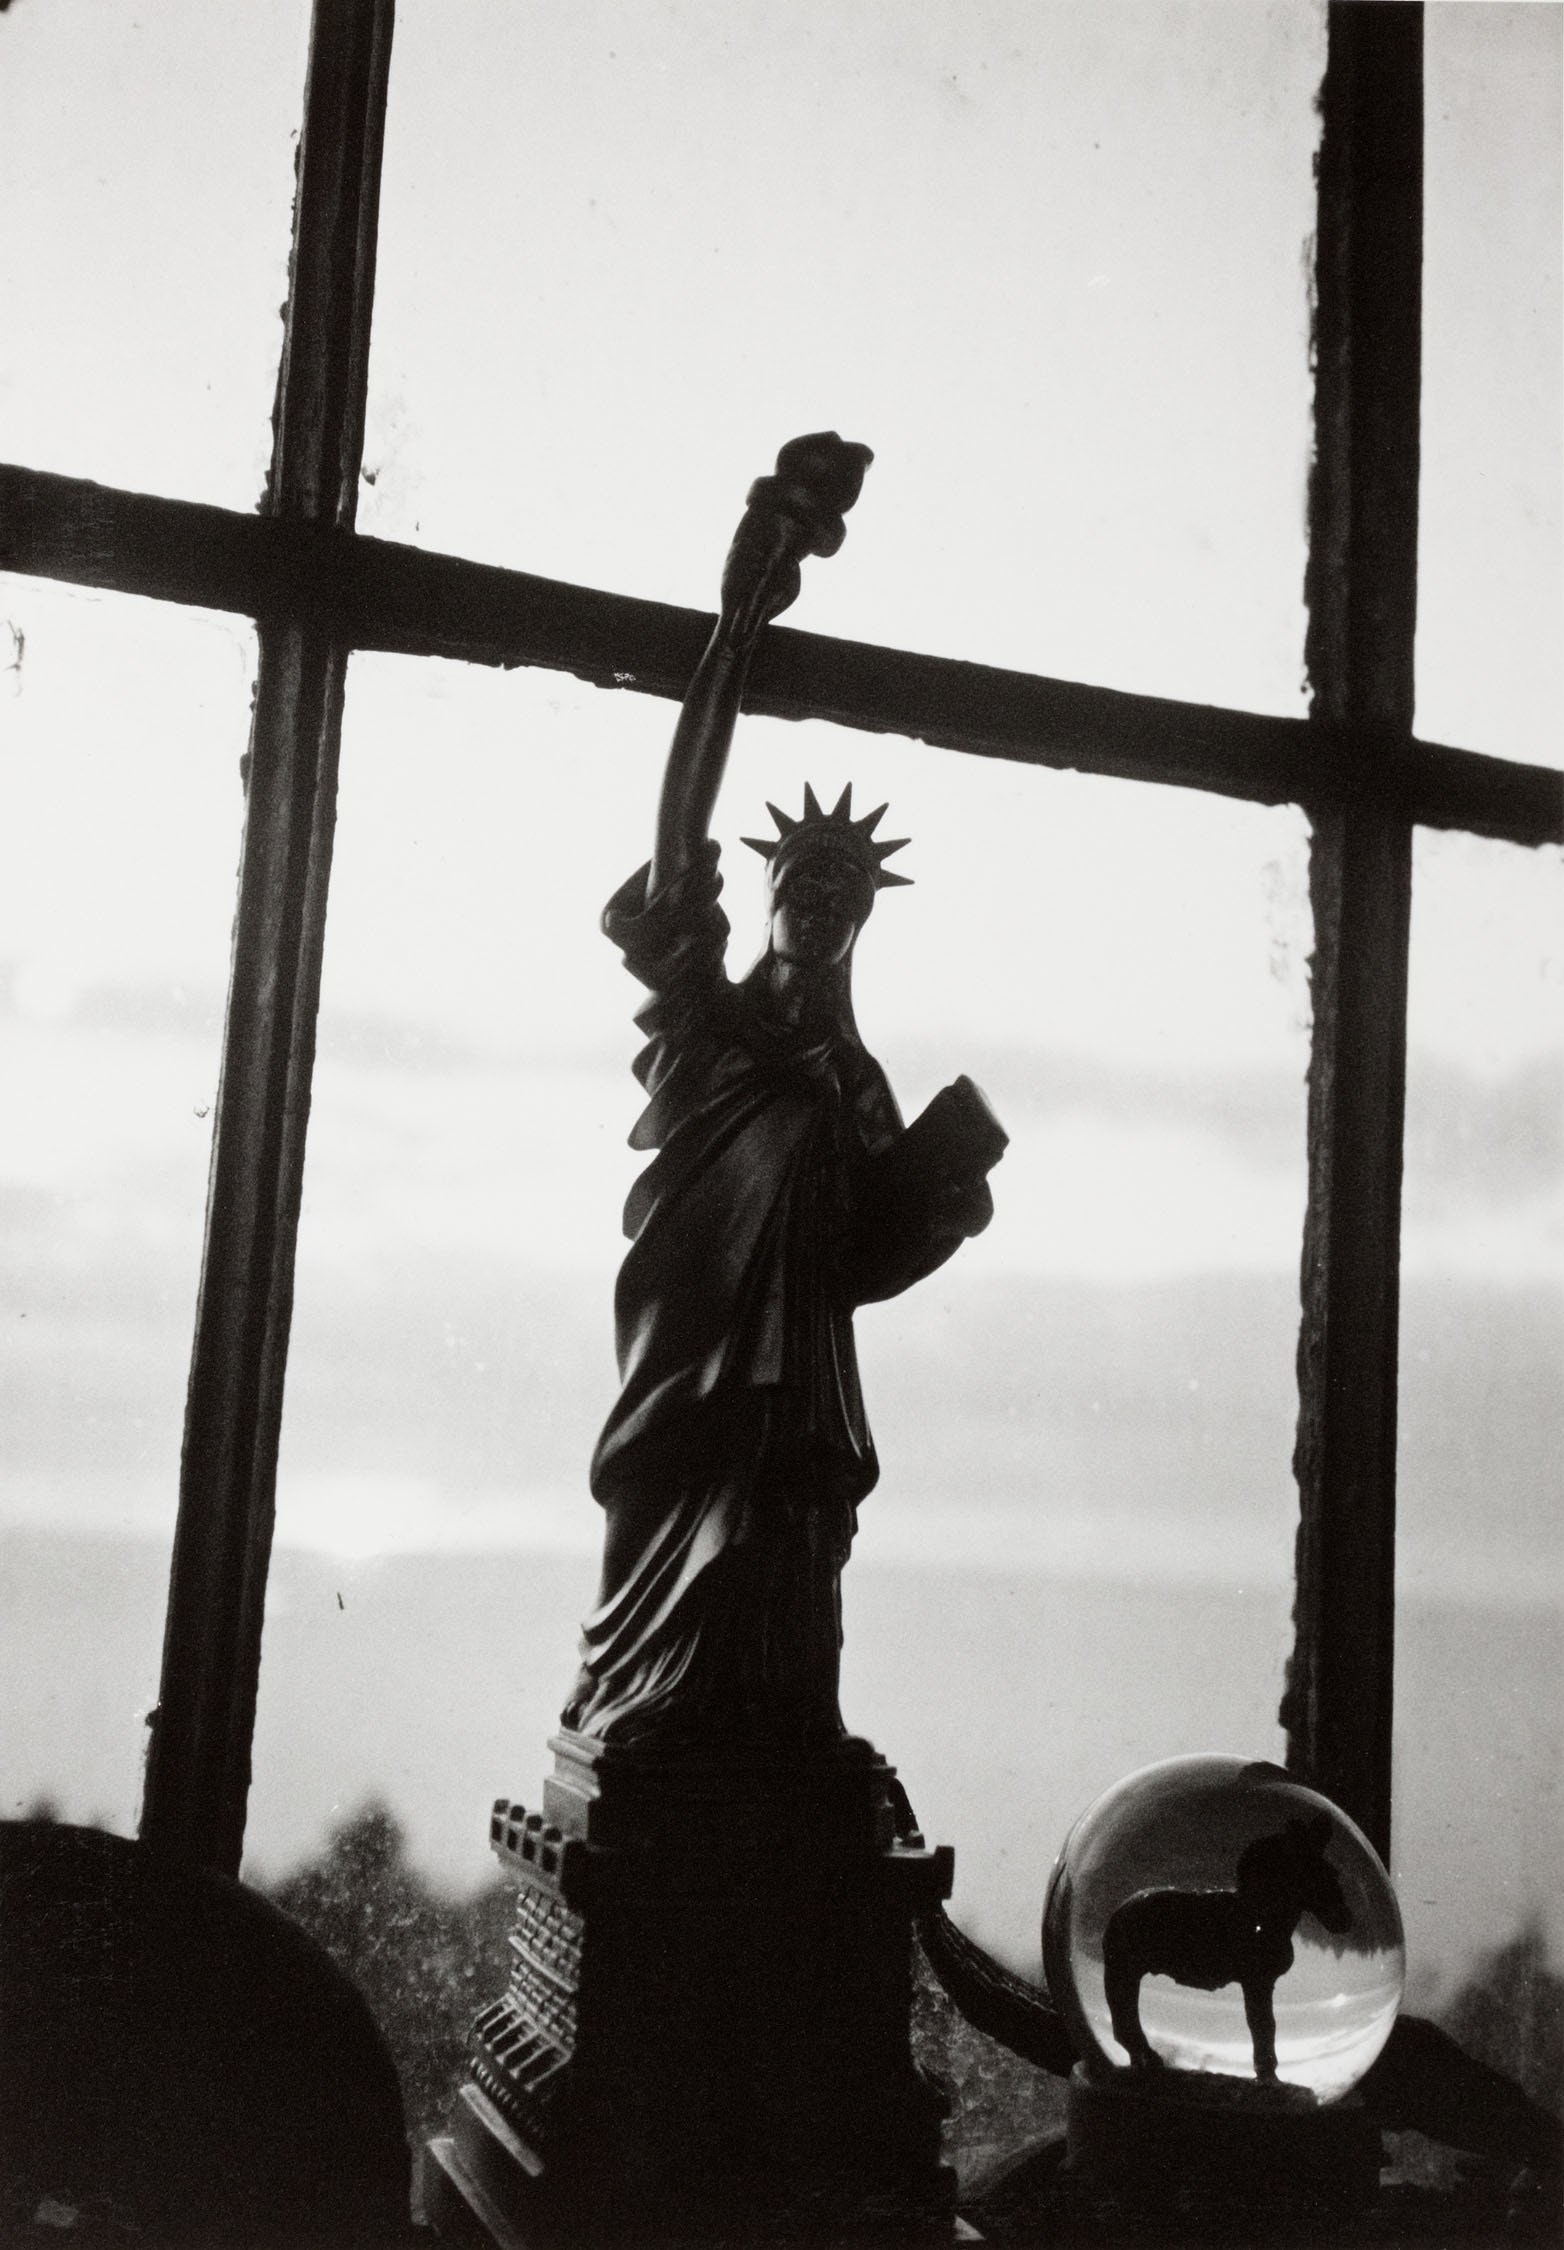 A black and white photo of a small figurine of the Statue of Liberty in front of a window.